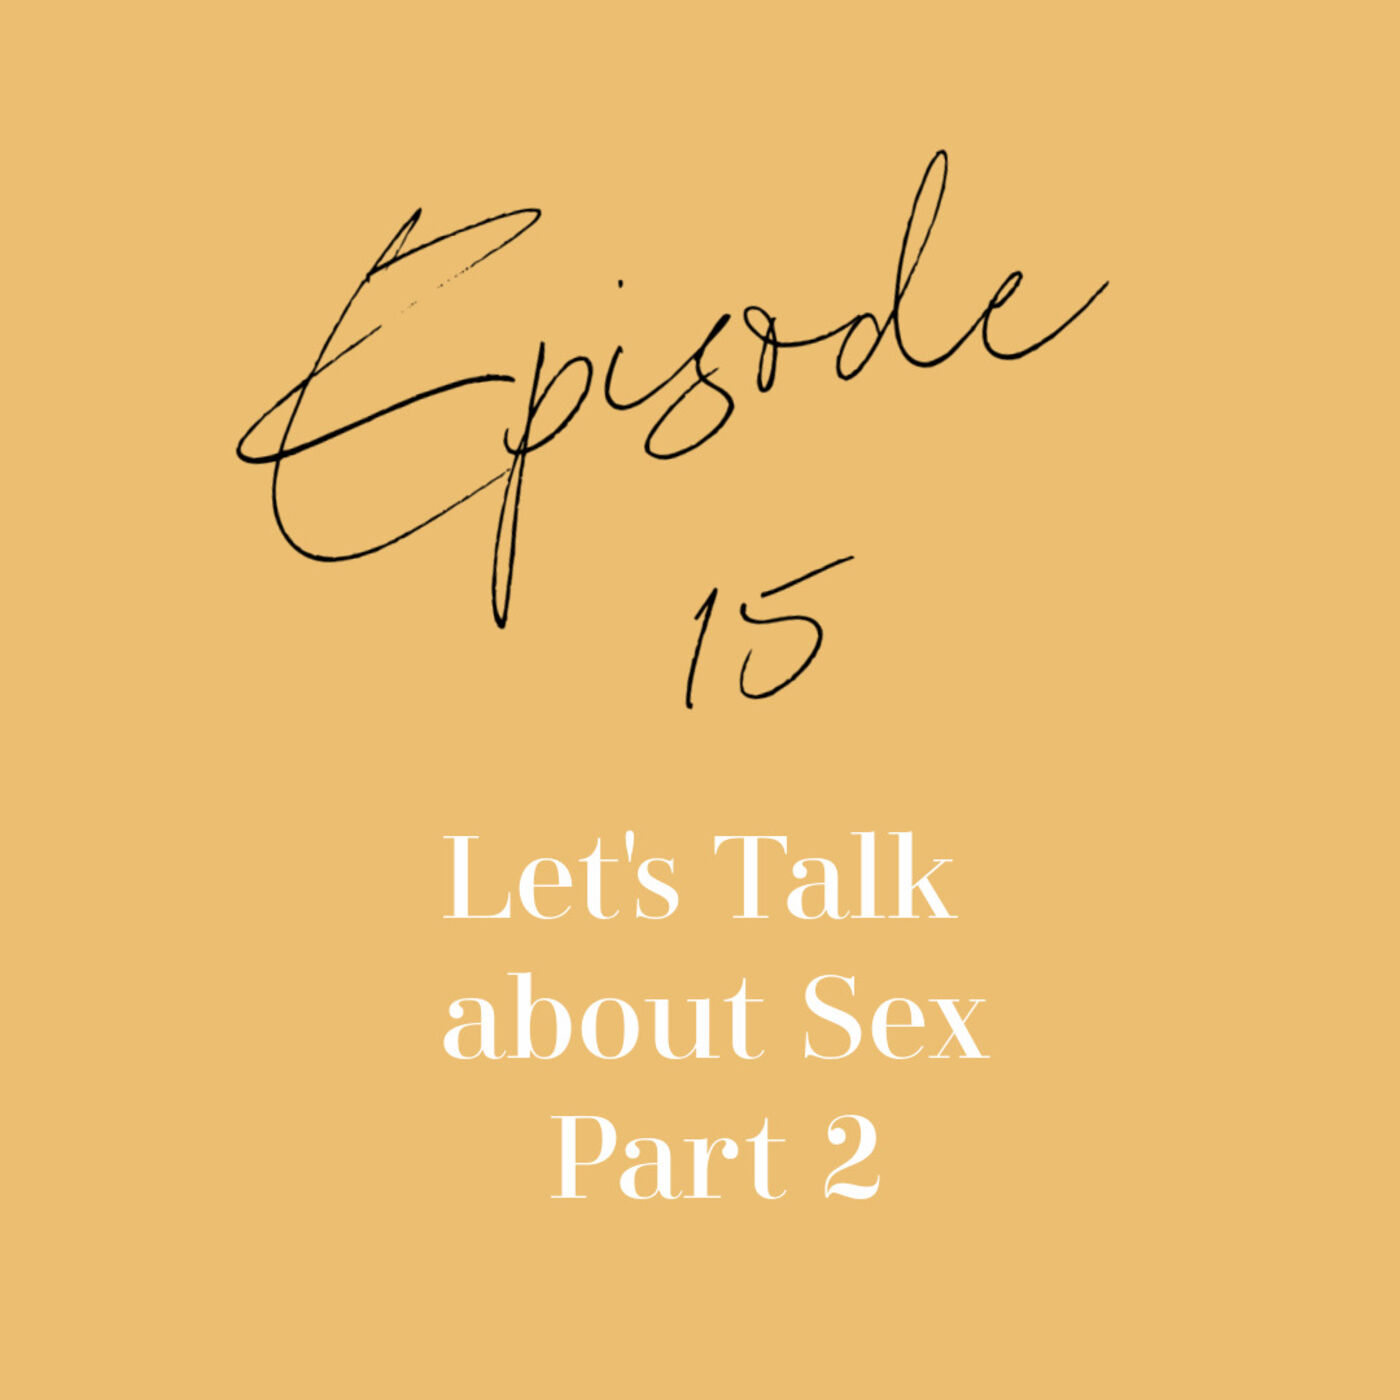 Episode 15: Let's Talk about Sex Part 2